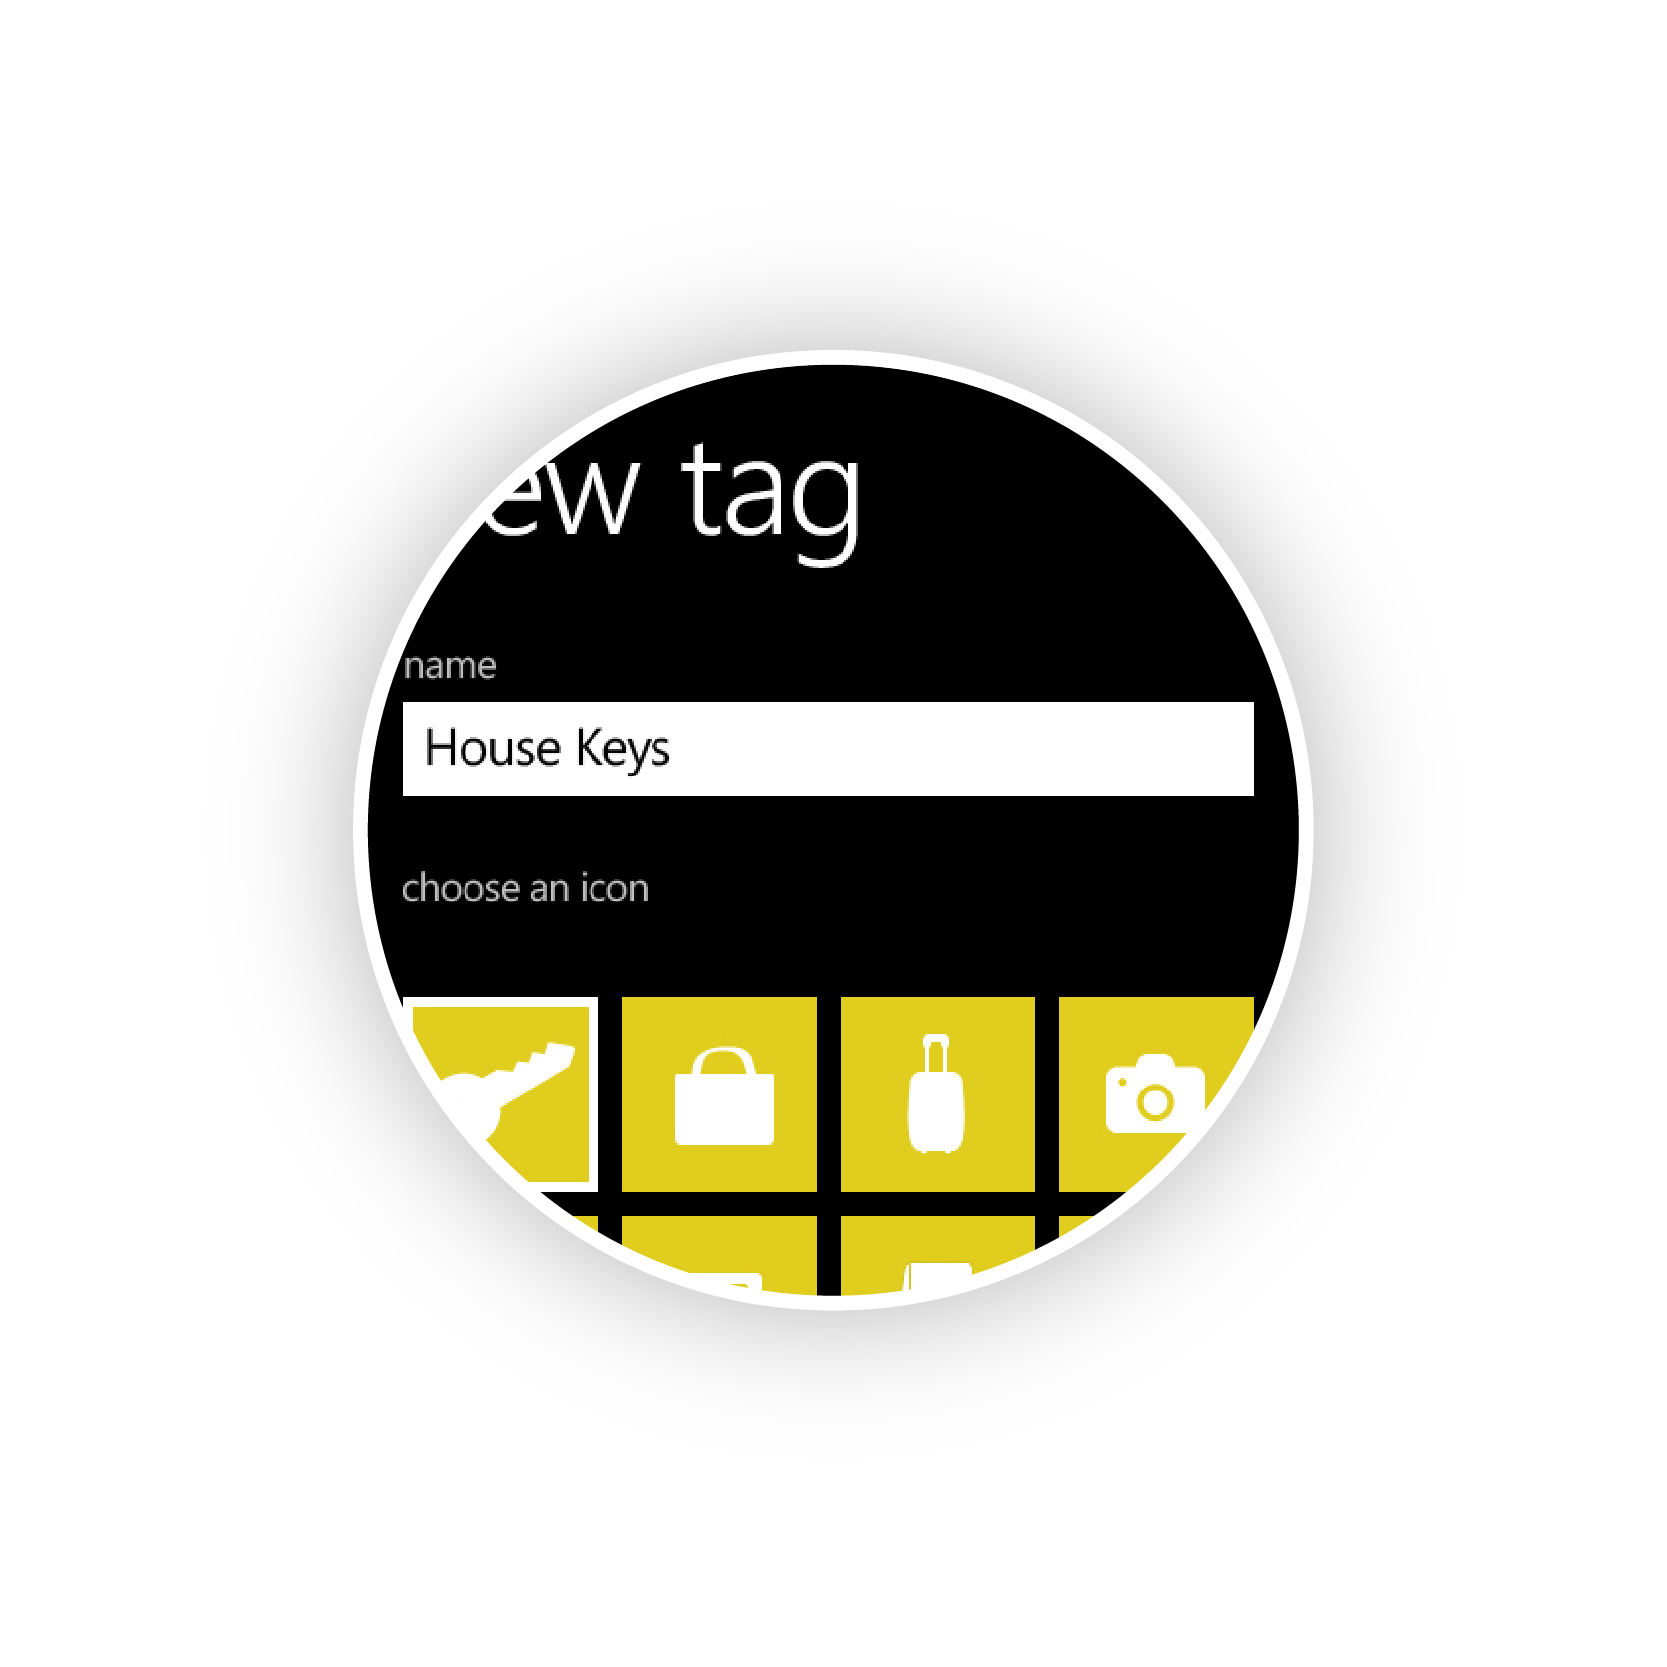 User journeys - We worked on the early concept stages of designing the companion app to the Nokia Treasure Tag.Together with an interaction designer, we explored the user journeys and technical scope in order to define the recommended feature set.